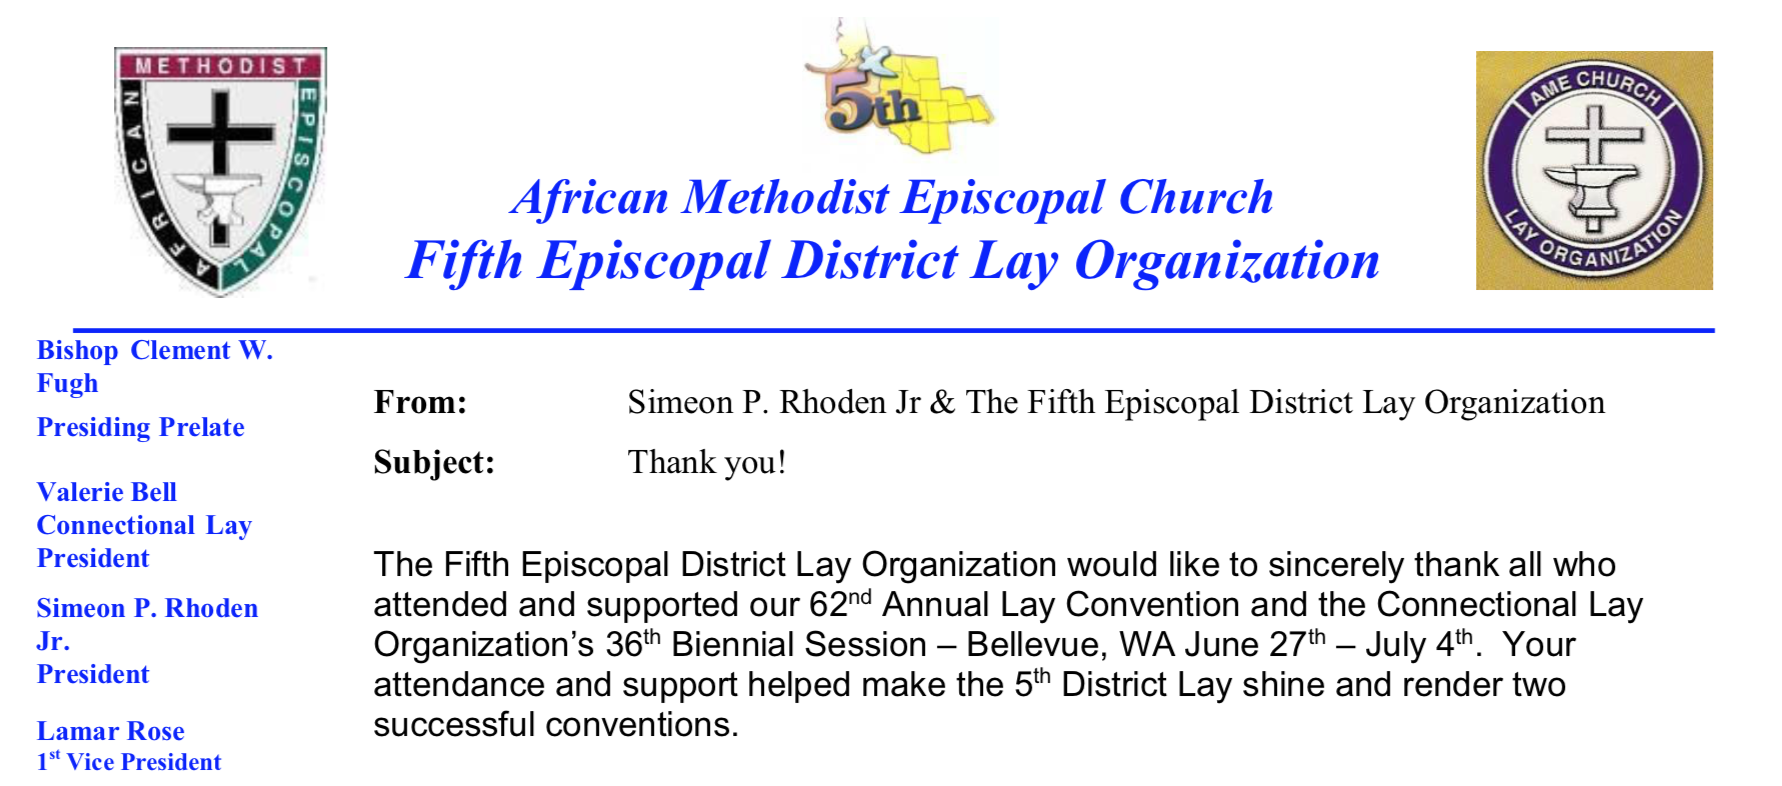 Fifth Episcopal District Lay Organization Of The African